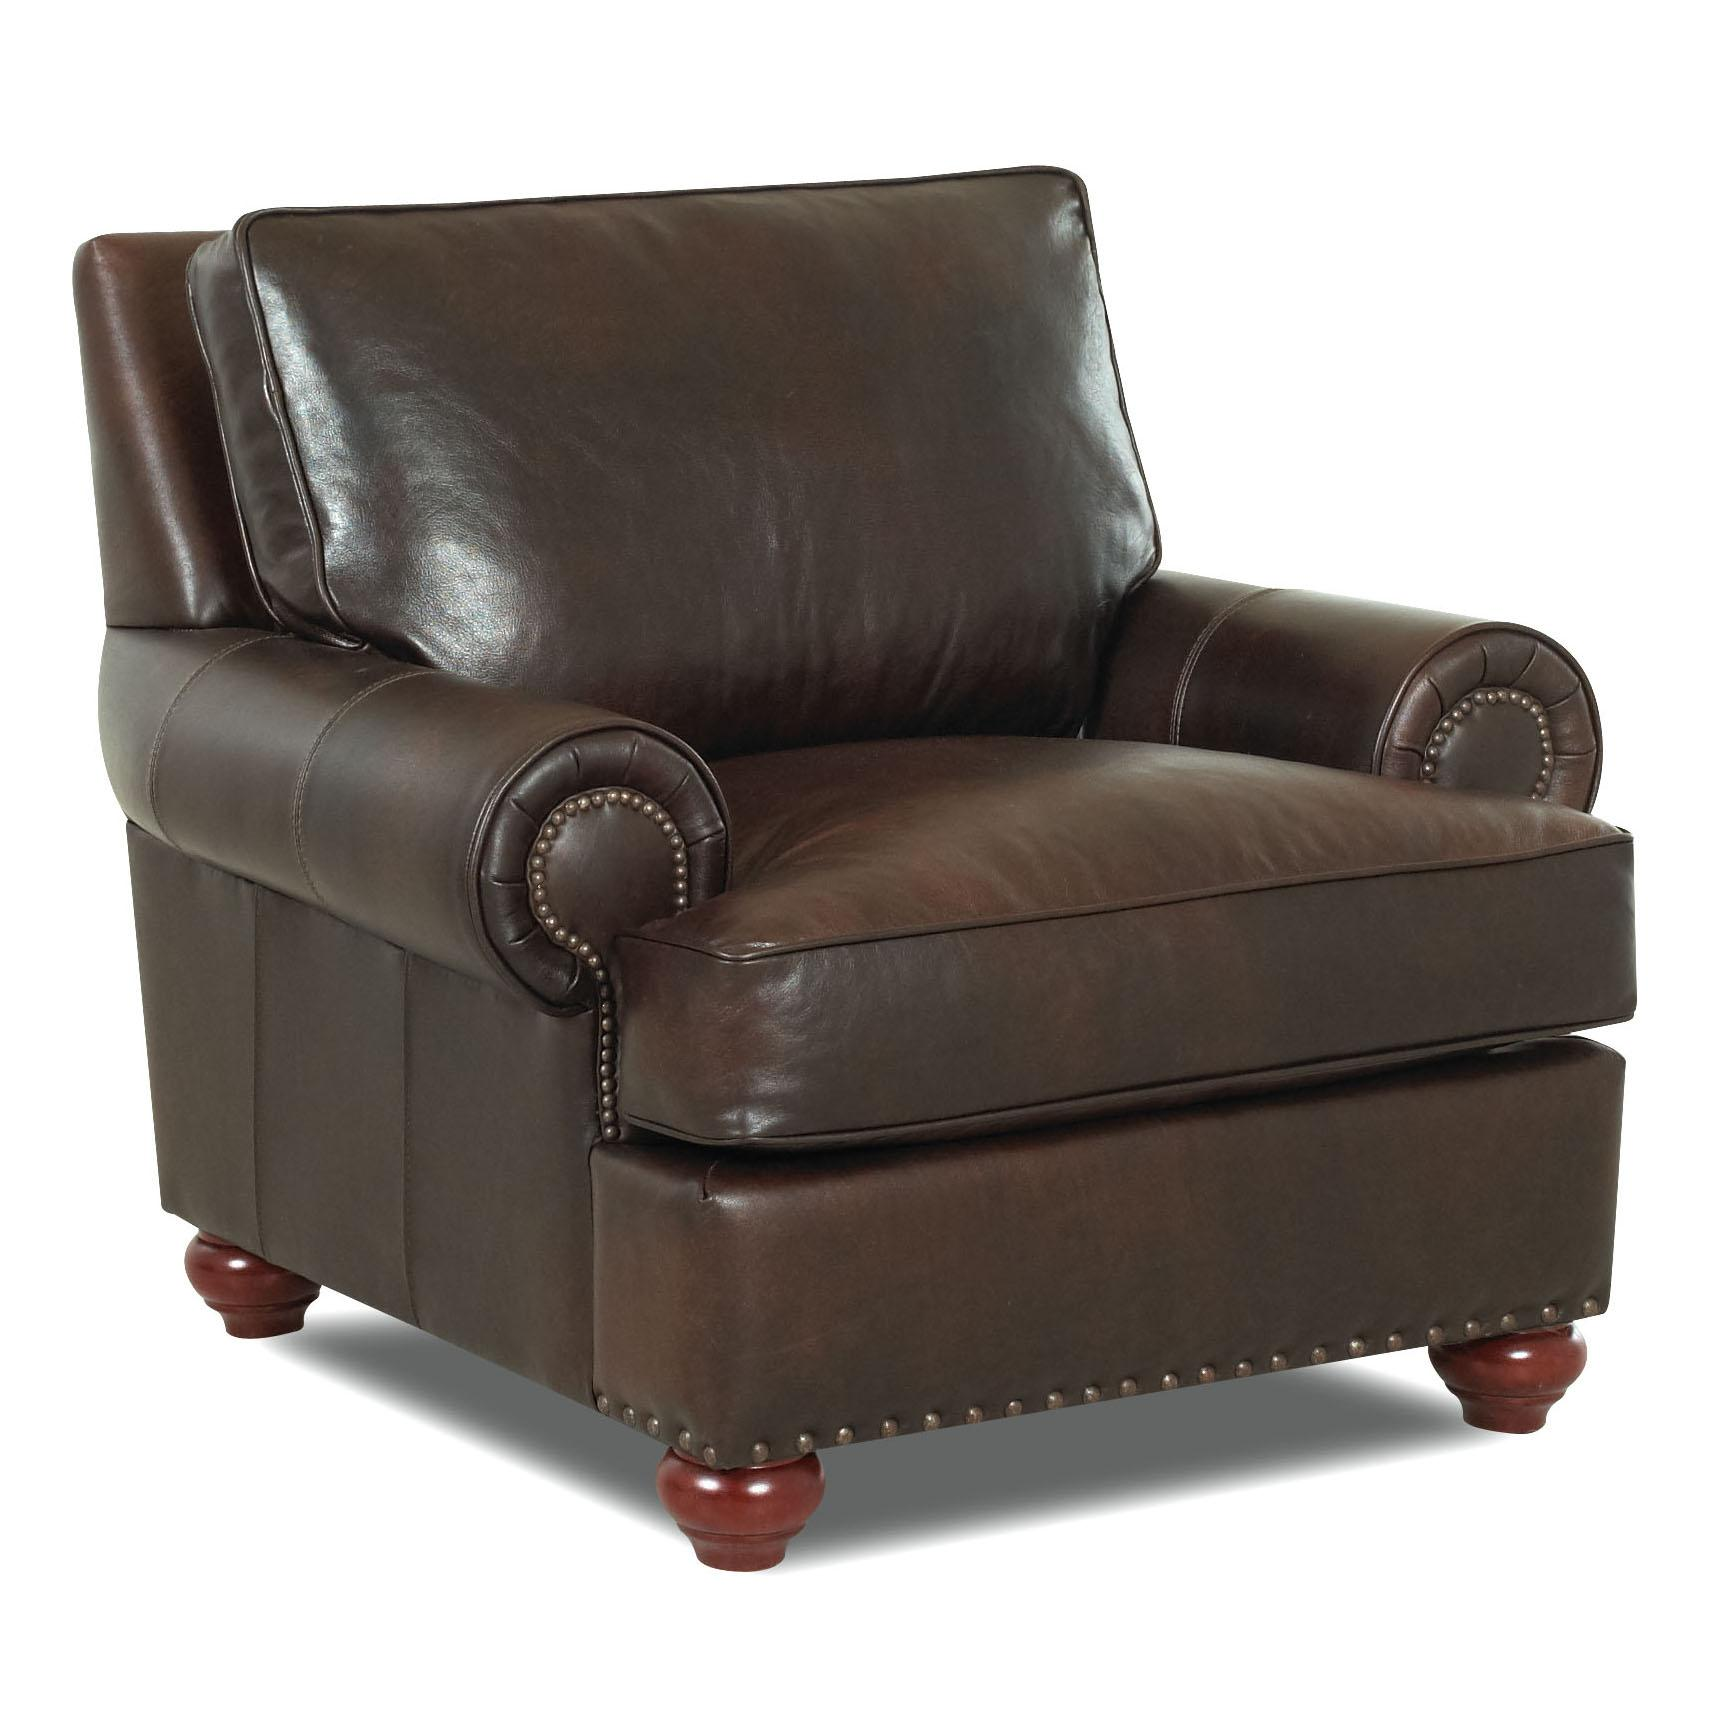 Klaussner Ellington Ld22610 C Nail Head Trim Leather Chair Dunk Bright Furniture